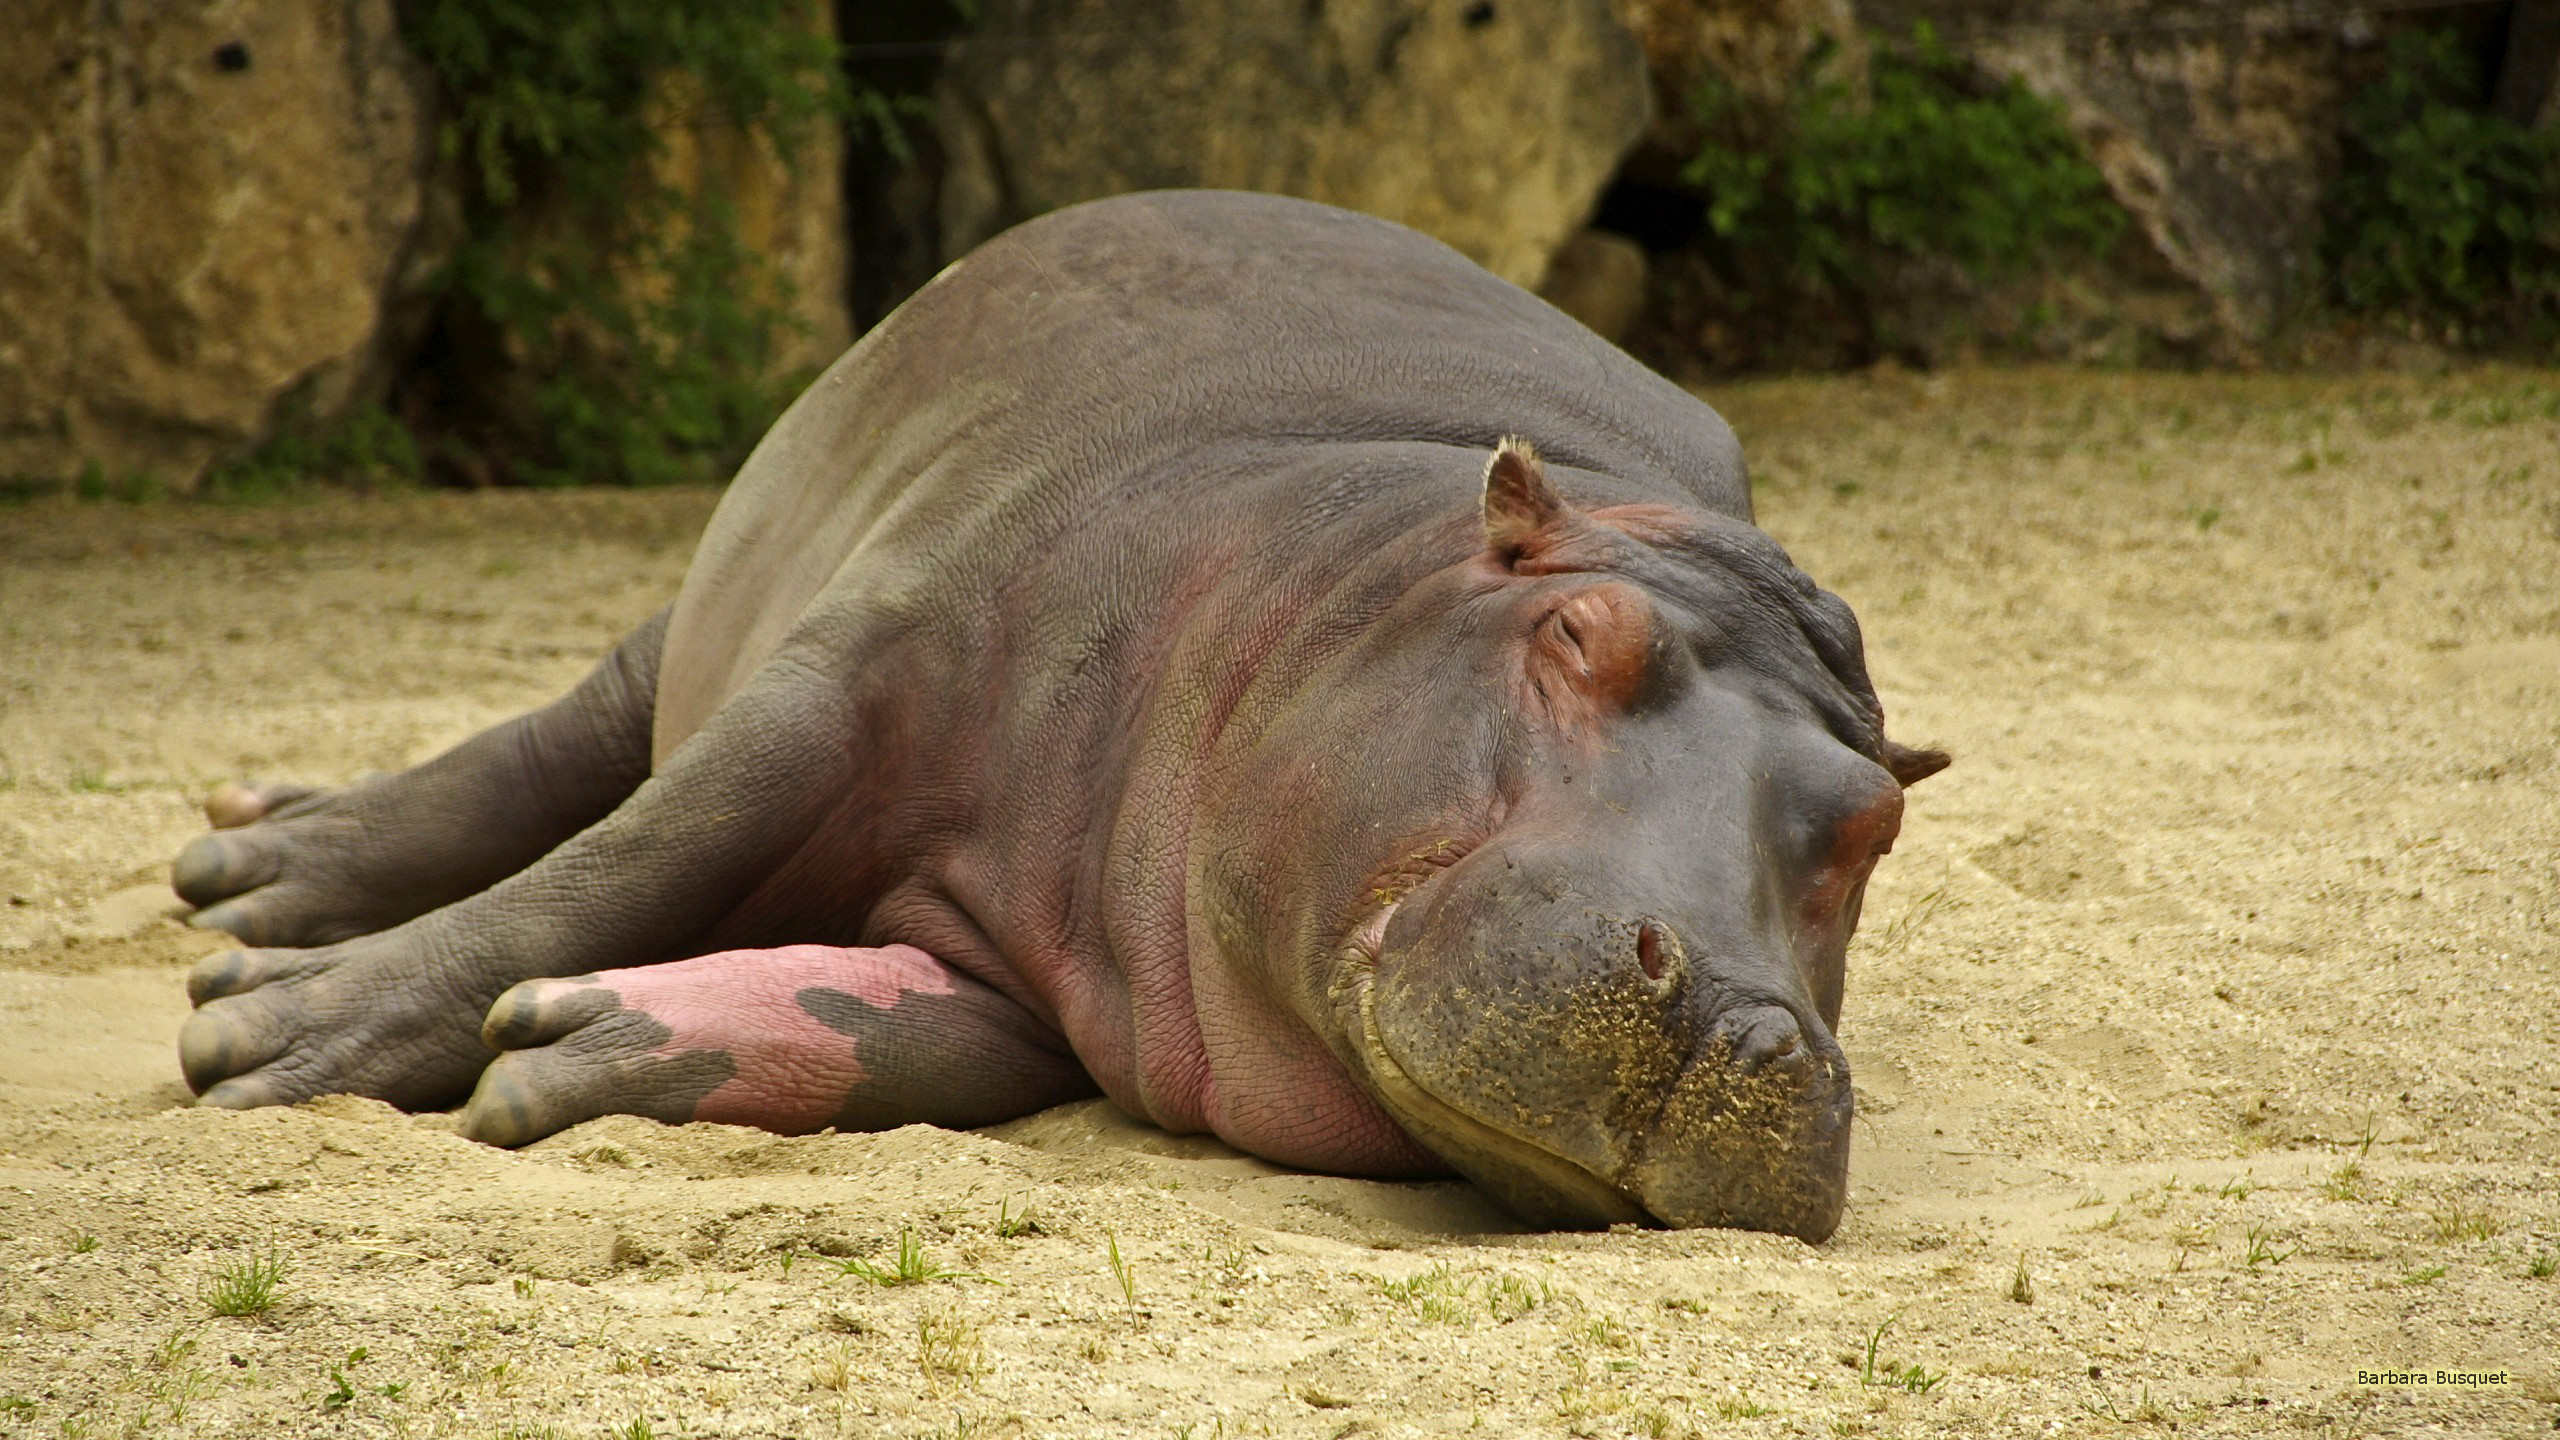 Hippo Desktop Backgrounds Barbaras Hd Wallpapers